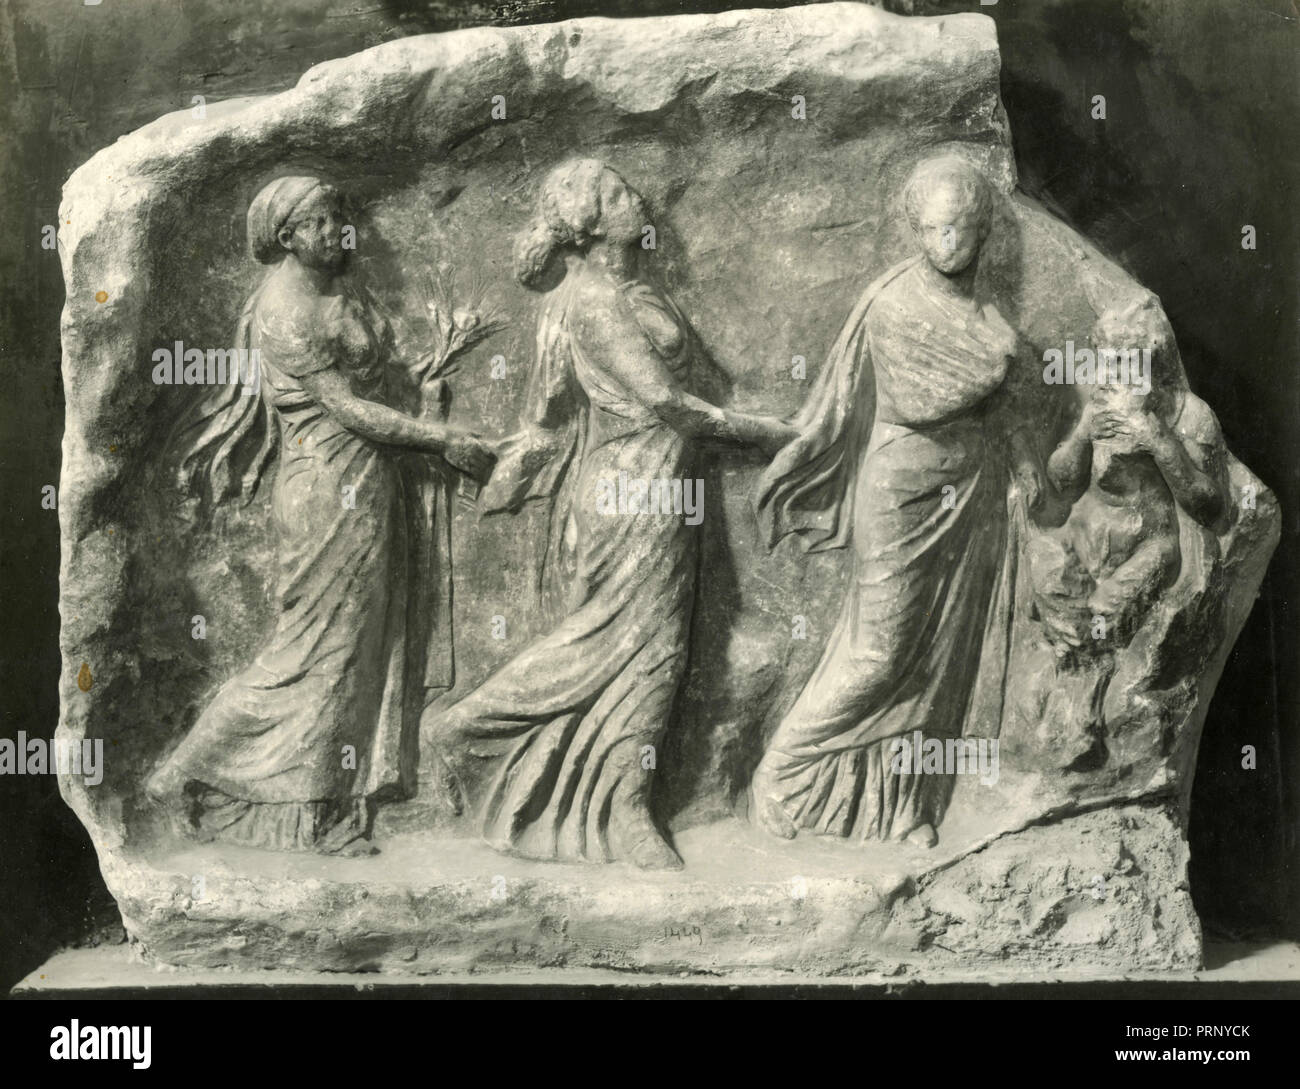 Marble votive relief to Pan with the three dancing Nymphs or Hours, Greece 1930s - Stock Image